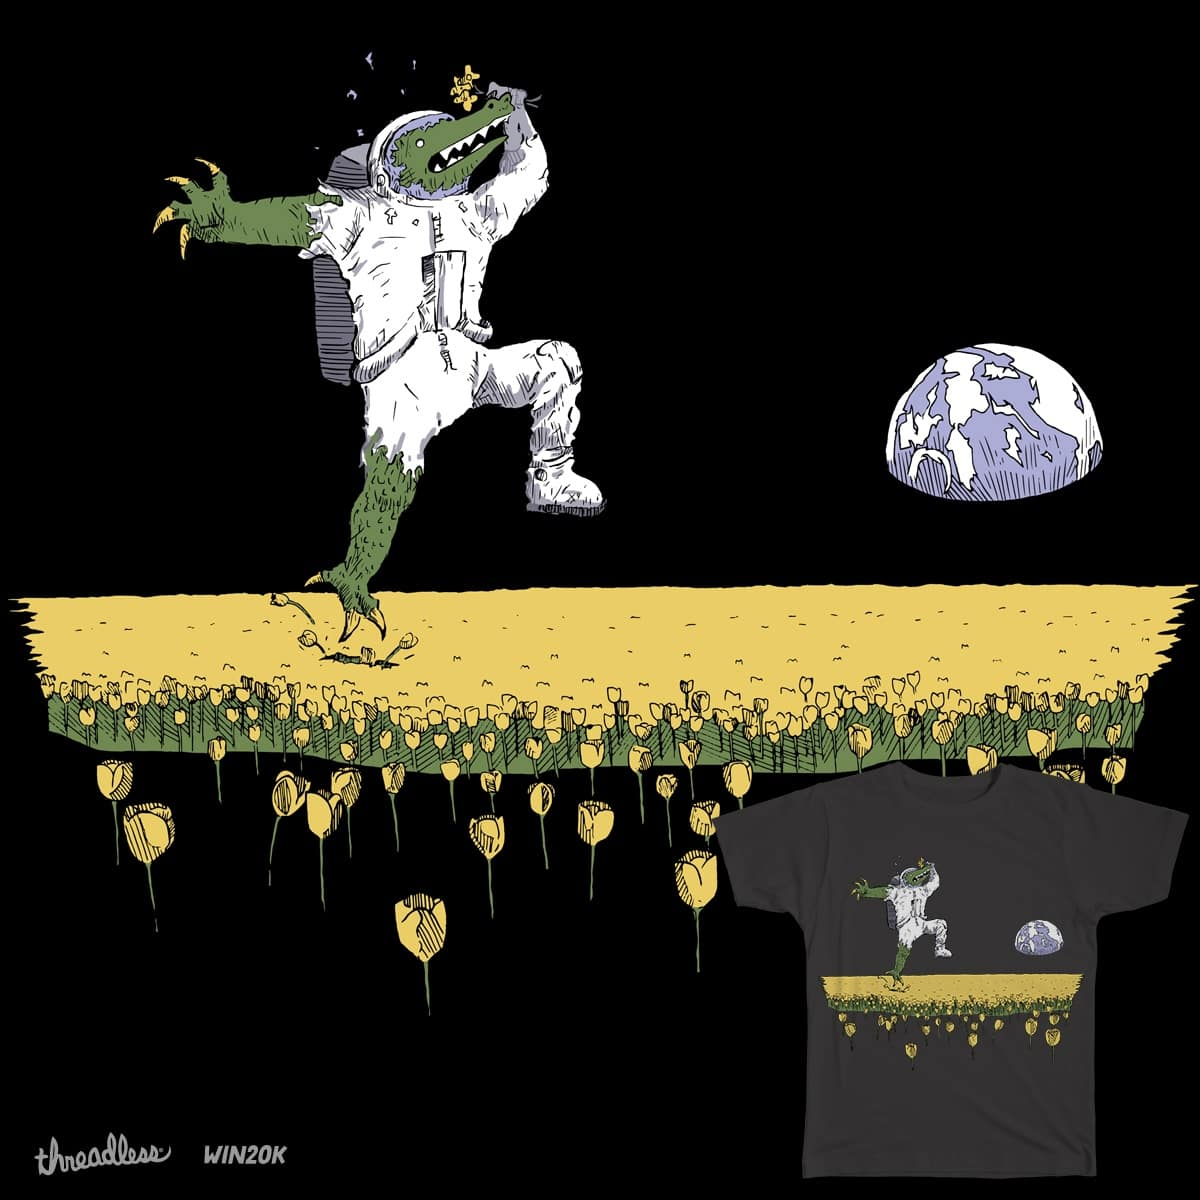 Tiptoe through the tulips by StacheMaster on Threadless